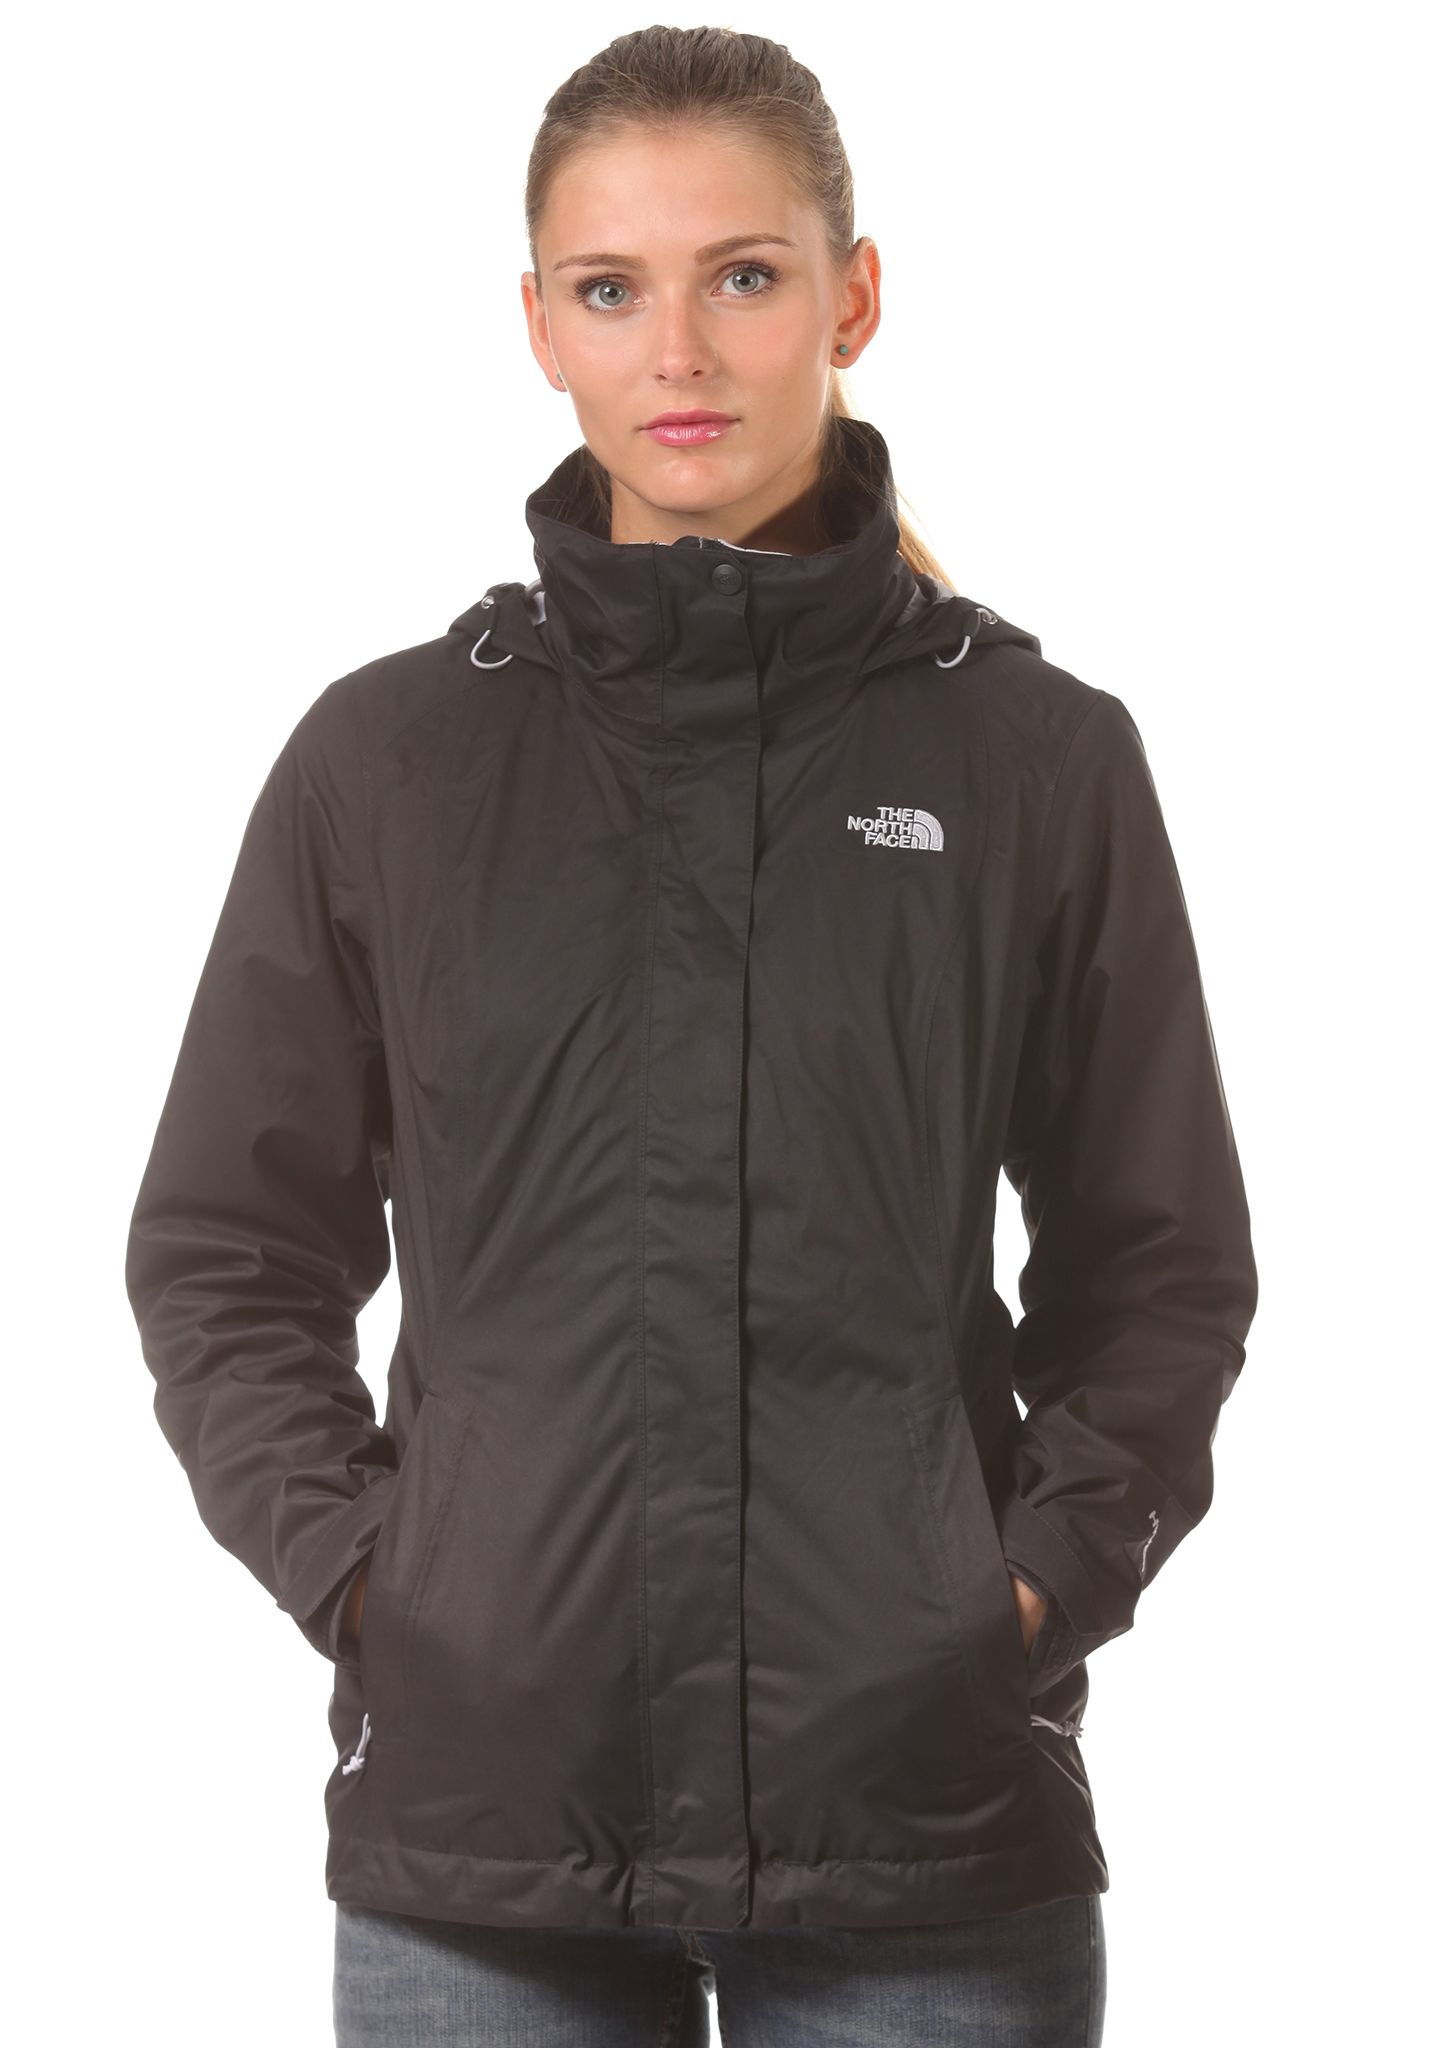 e0be819aa23e The North Face jackets • PLANET SPORTS online shop